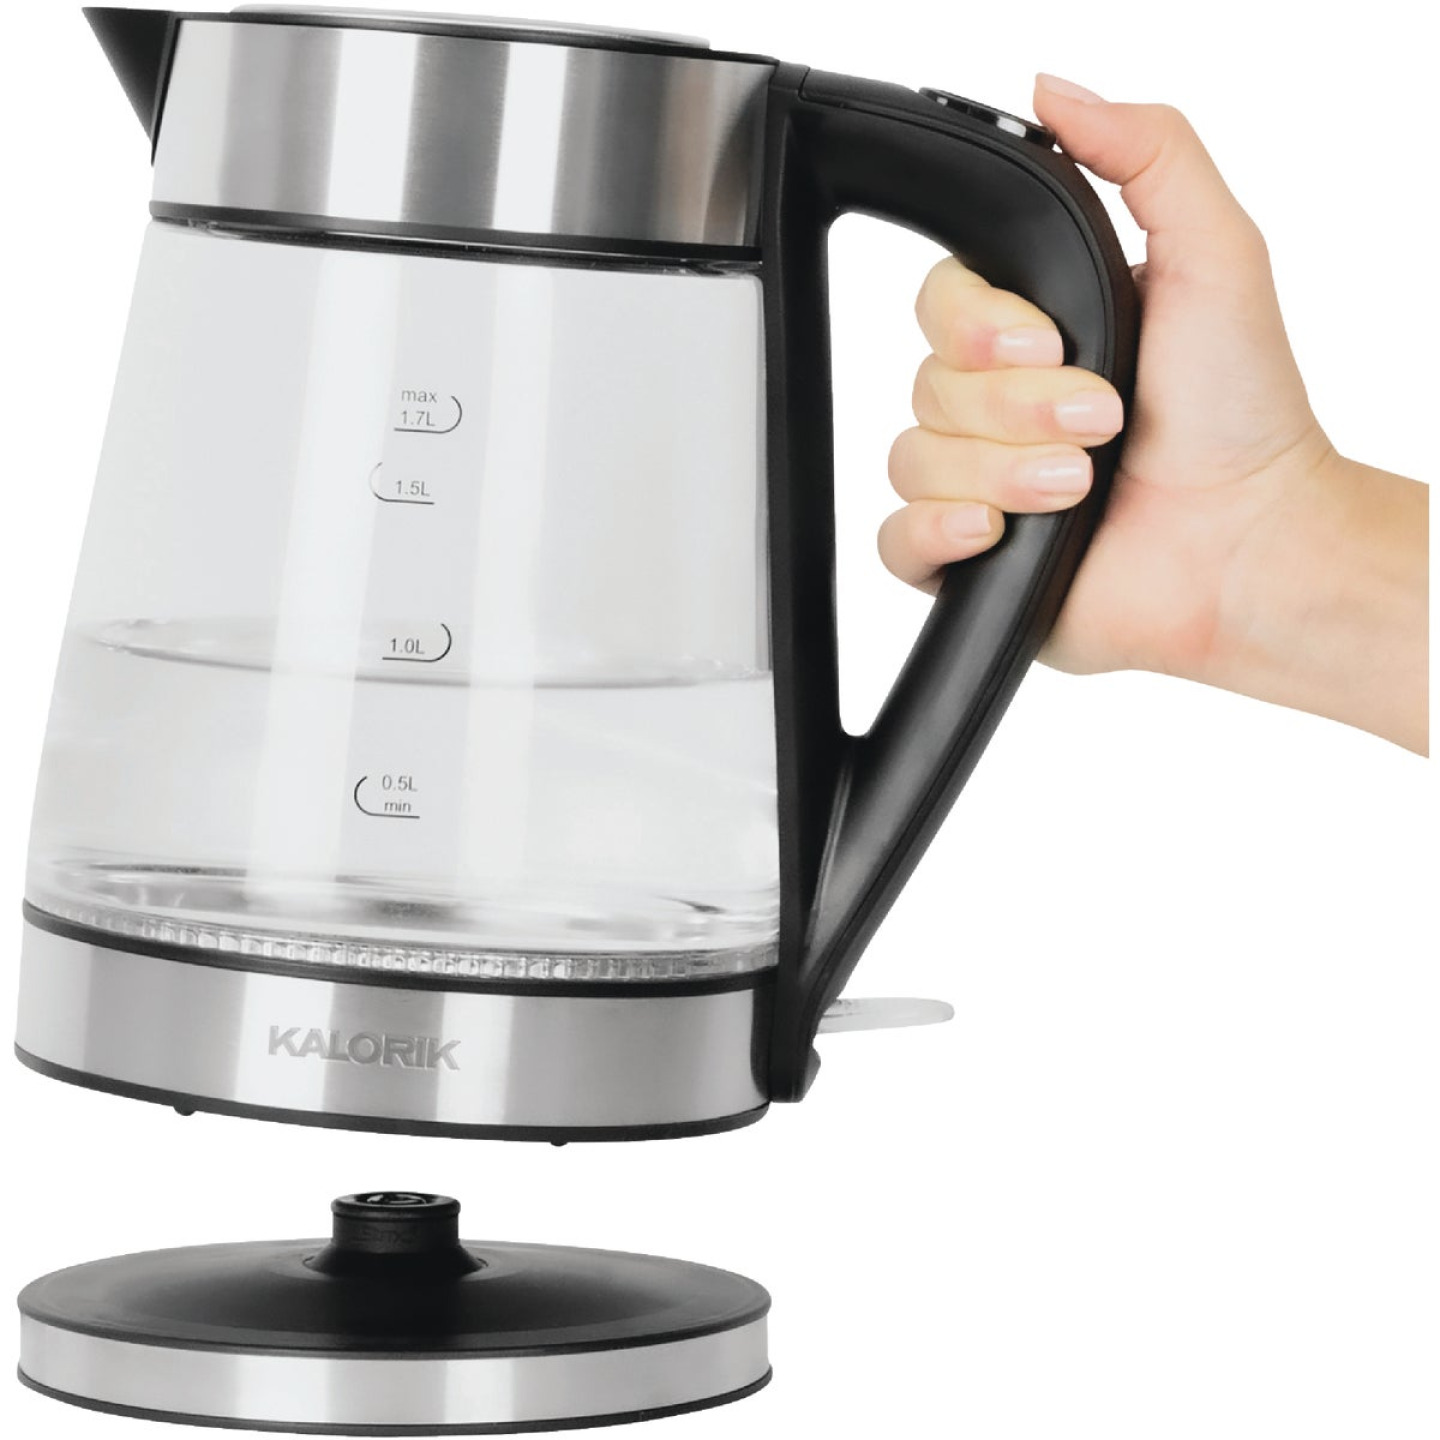 Kalorik 7 Cup Stainless Steel Color Changing LED Electric Kettle Image 1